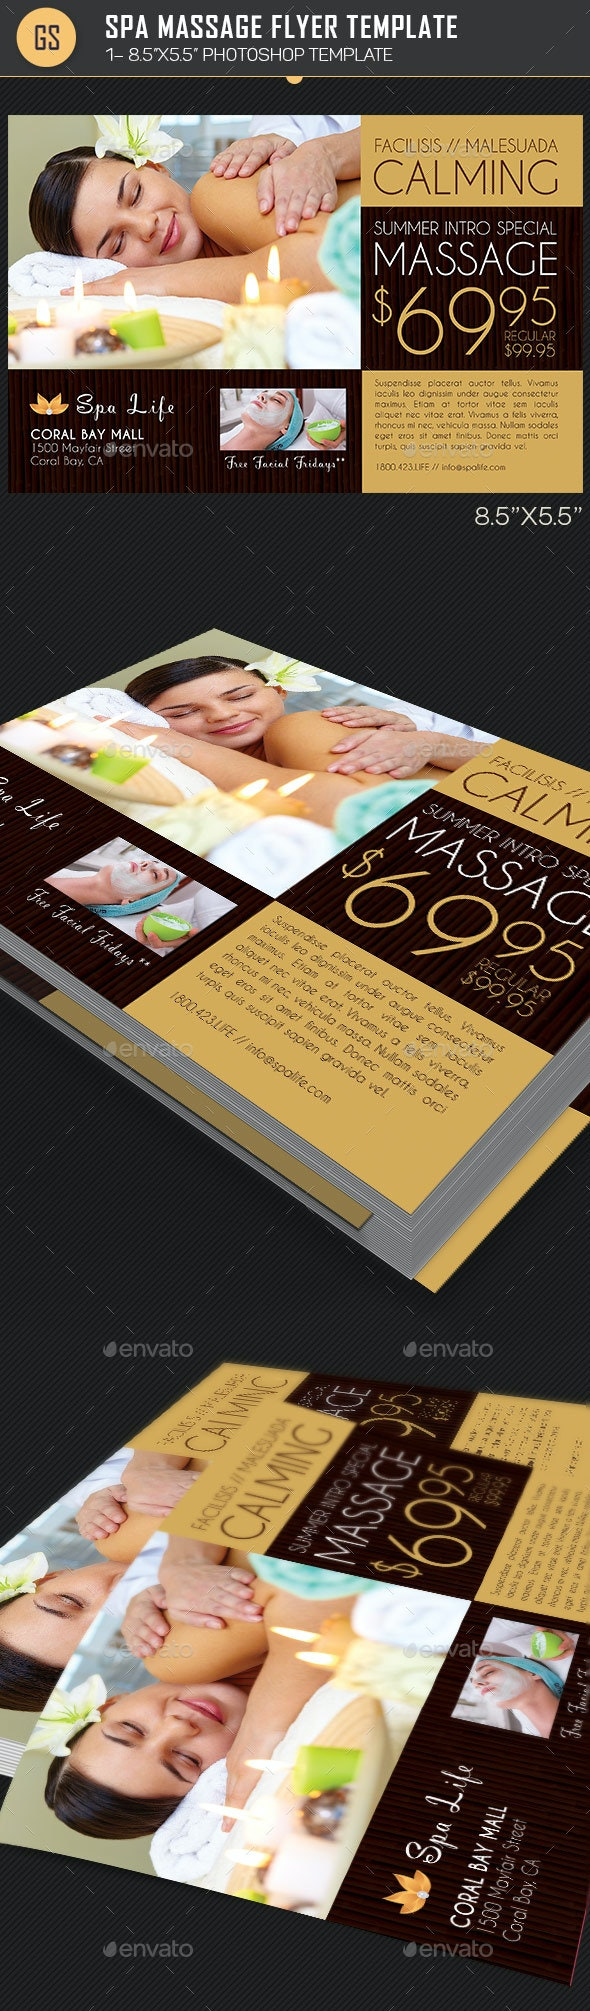 Spa Massage Flyer Template - Corporate Flyers